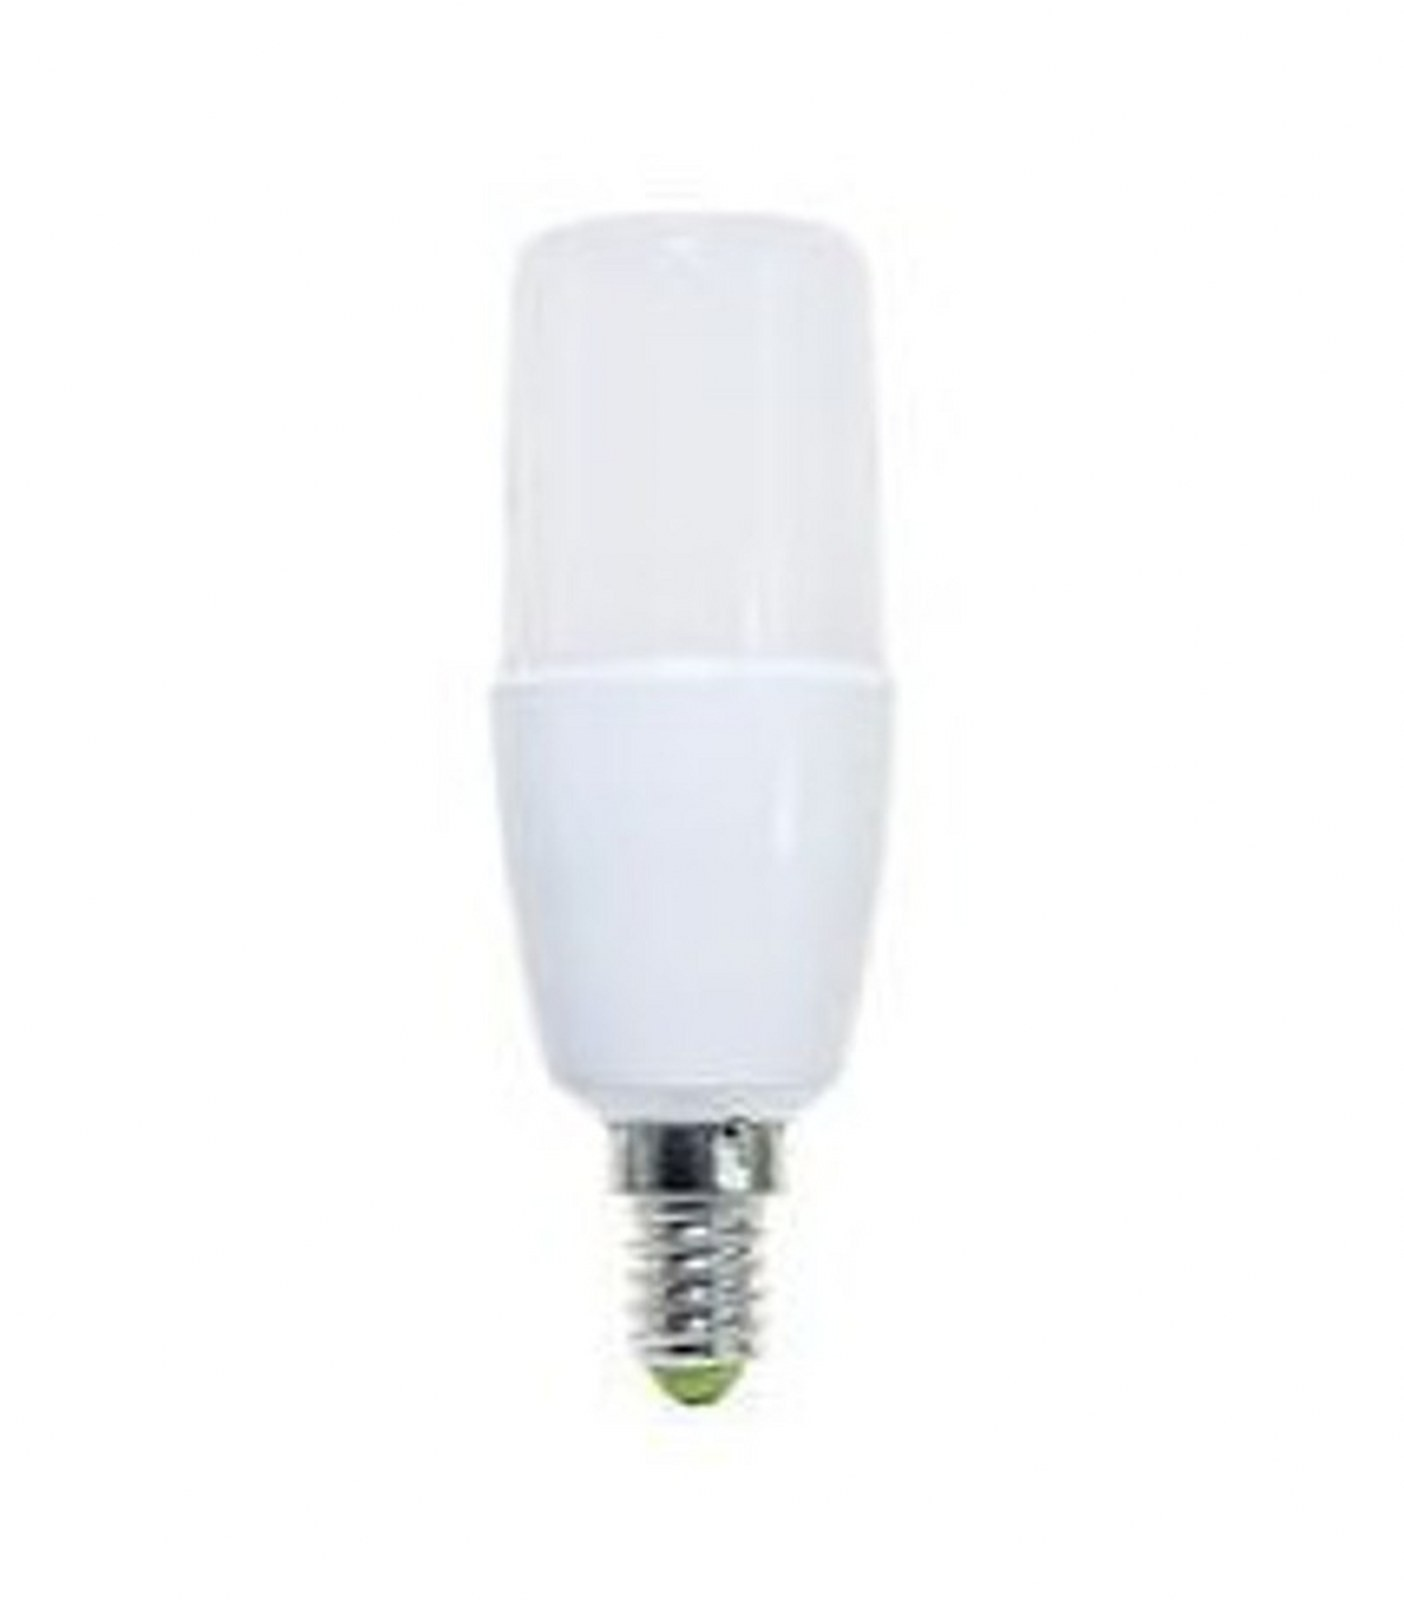 Lampadina a led per interni 3000k luce bianca calda 860 for Led luce bianca